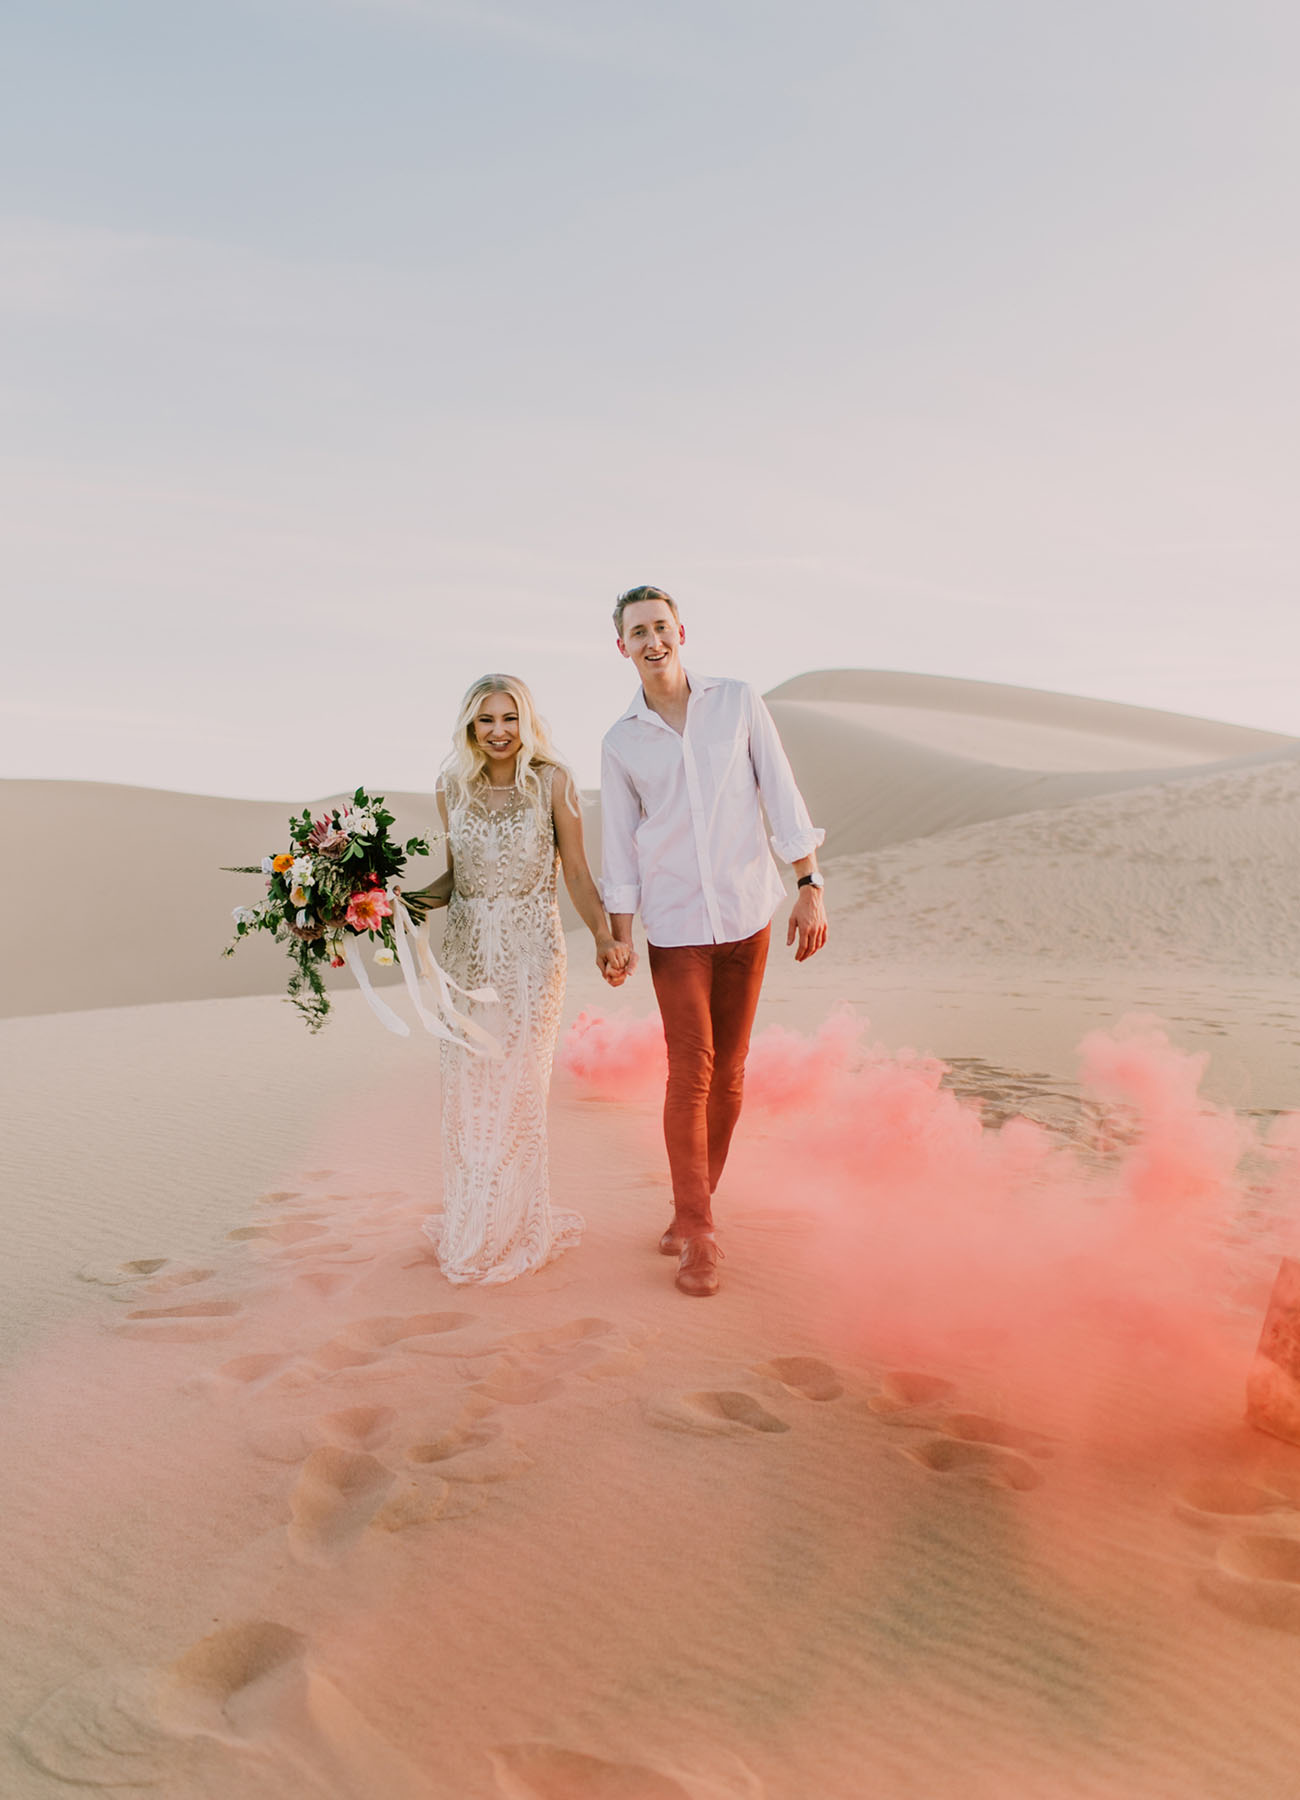 Time it right and you can have the Imperial Sand Dunes in Niland, California all to yourself to exchange vows